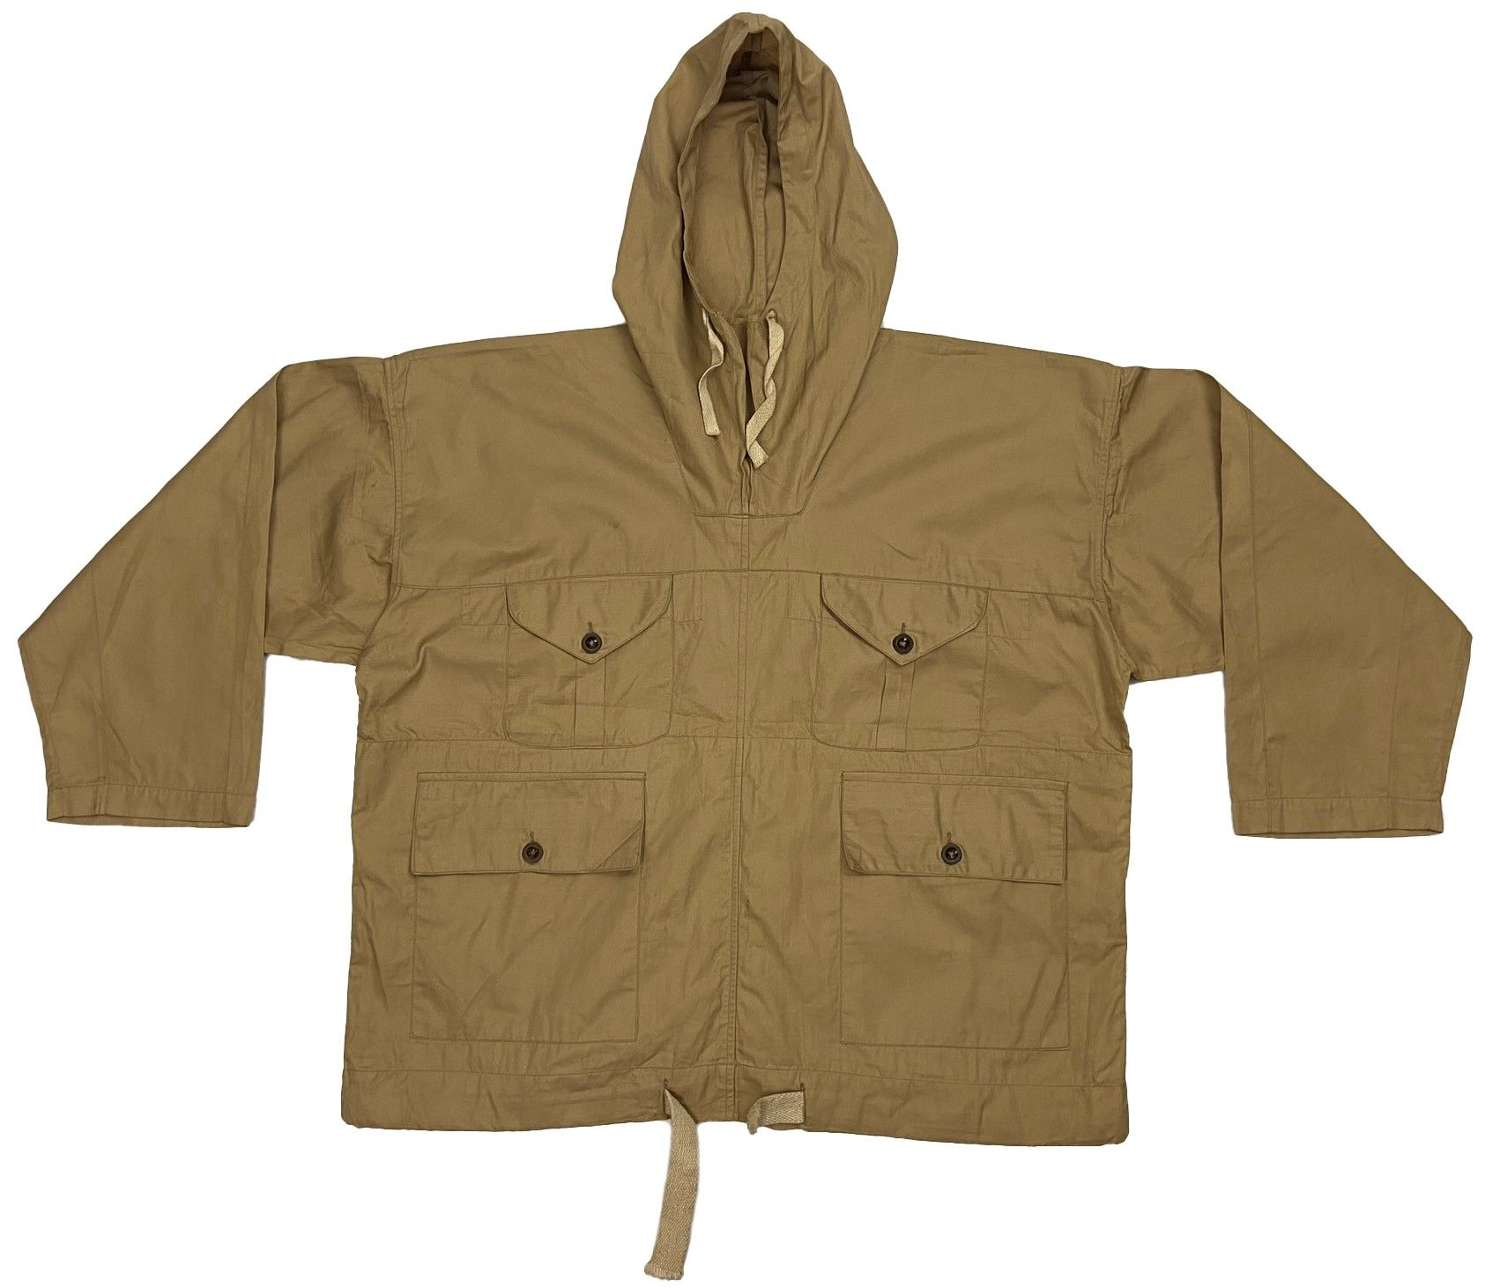 Original 1942 Dated Drab Windproof Smock - Size 1